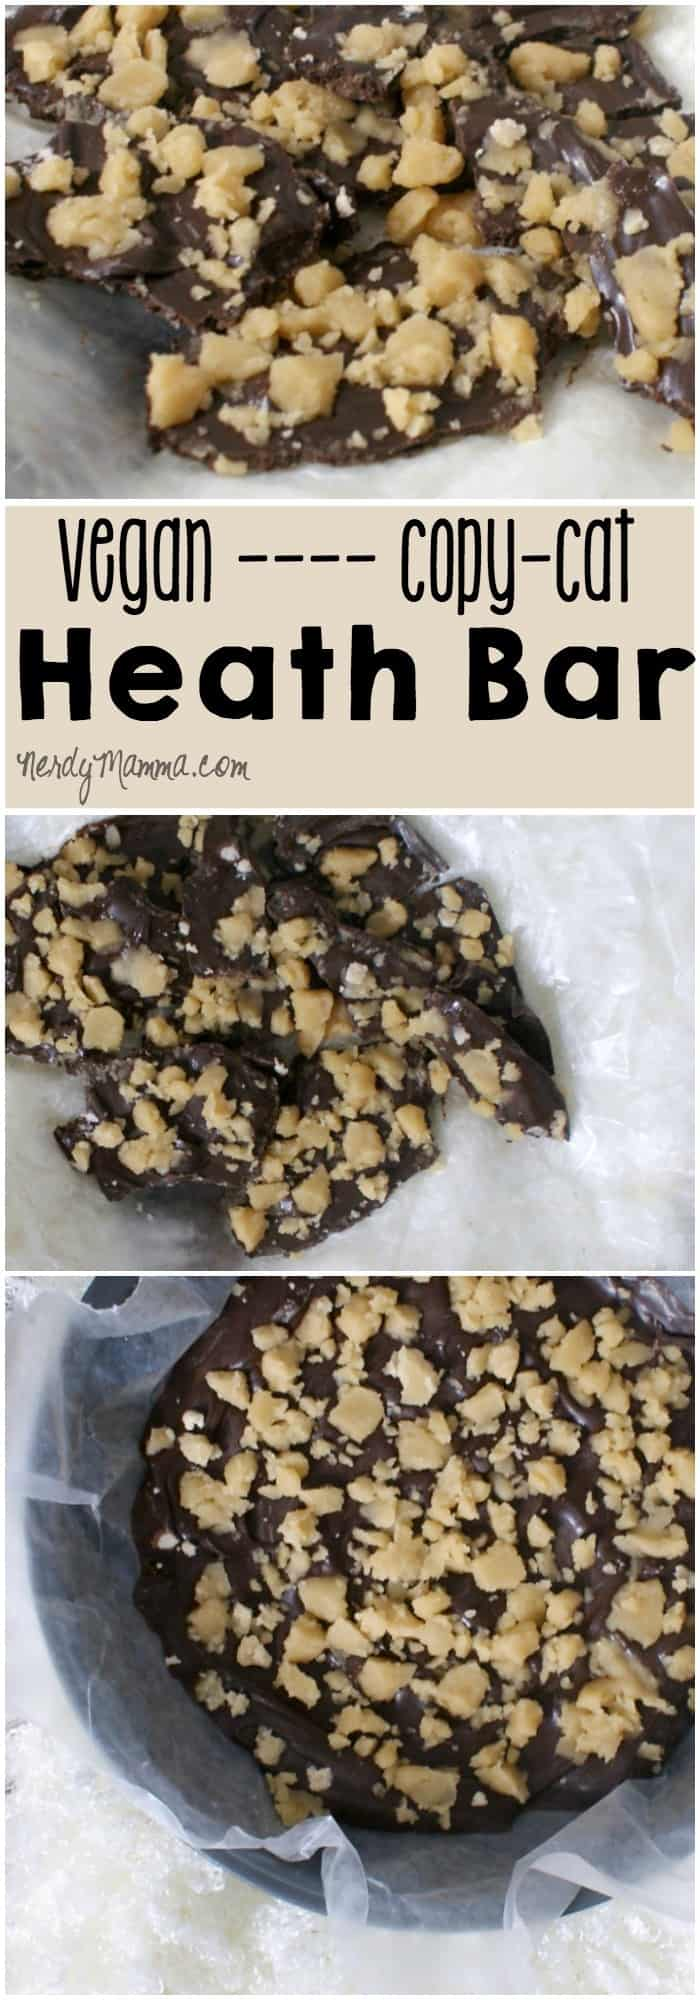 I may or may not have just eaten my weight in this awesome vegan heath bar. I mean, toffee, chocolate; all dairy-free, gluten free and mmmmm....can you blame me